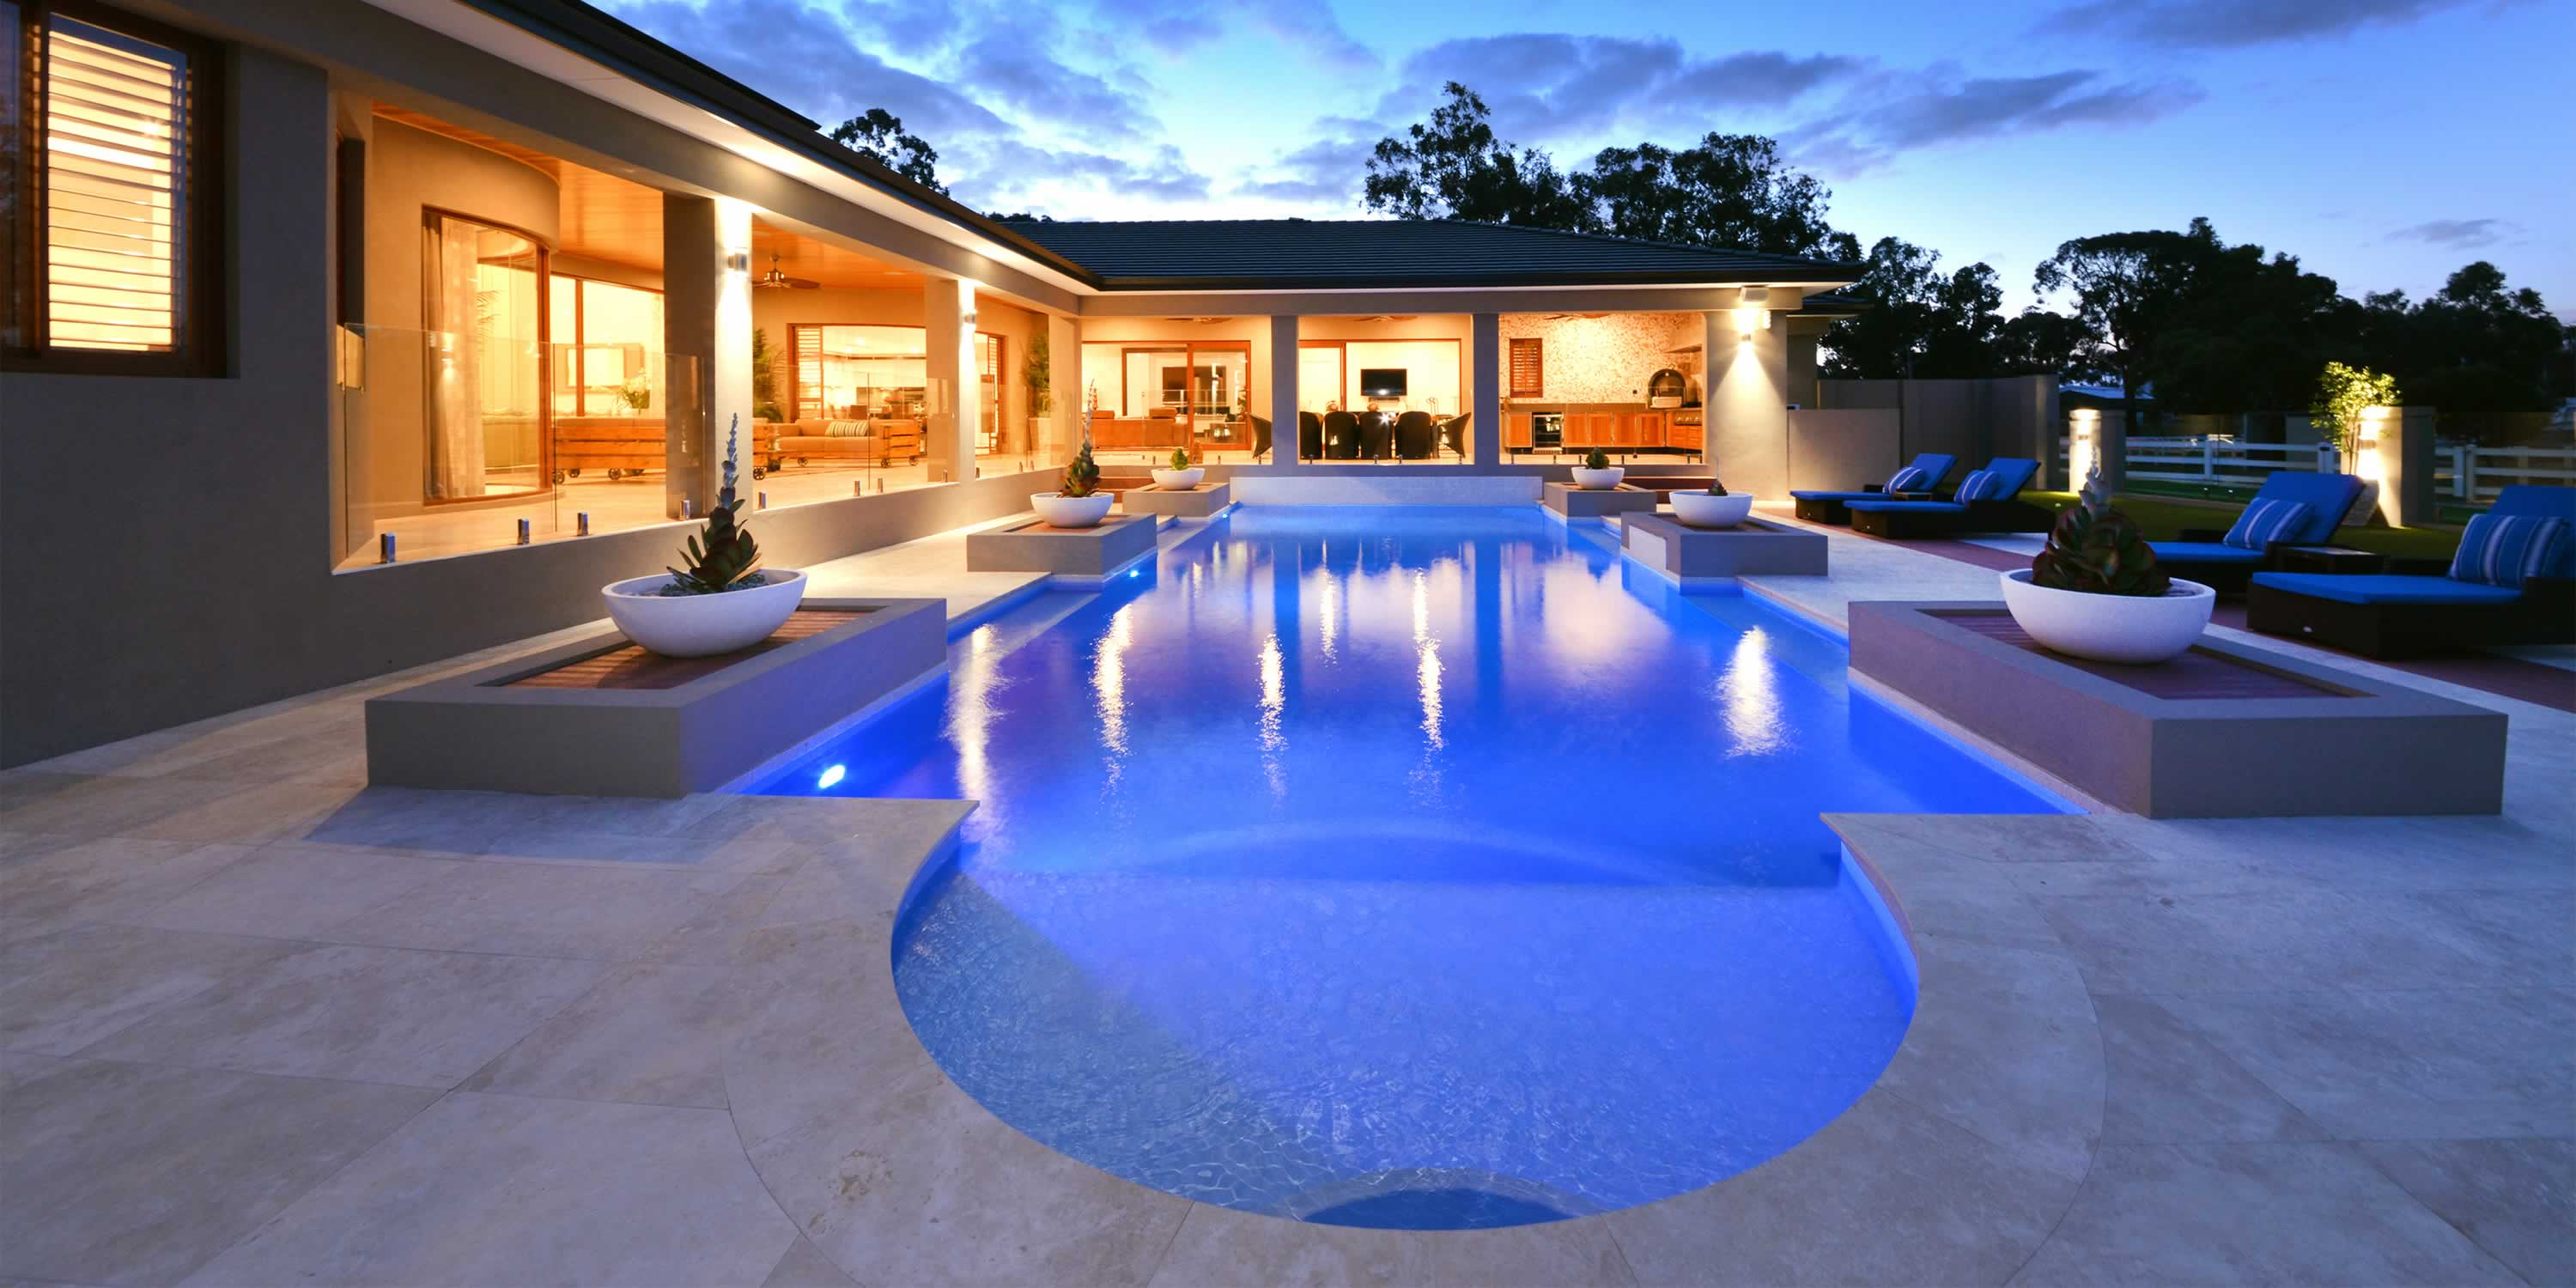 Concrete swimming pools perth from liverpools spas for Pool design perth